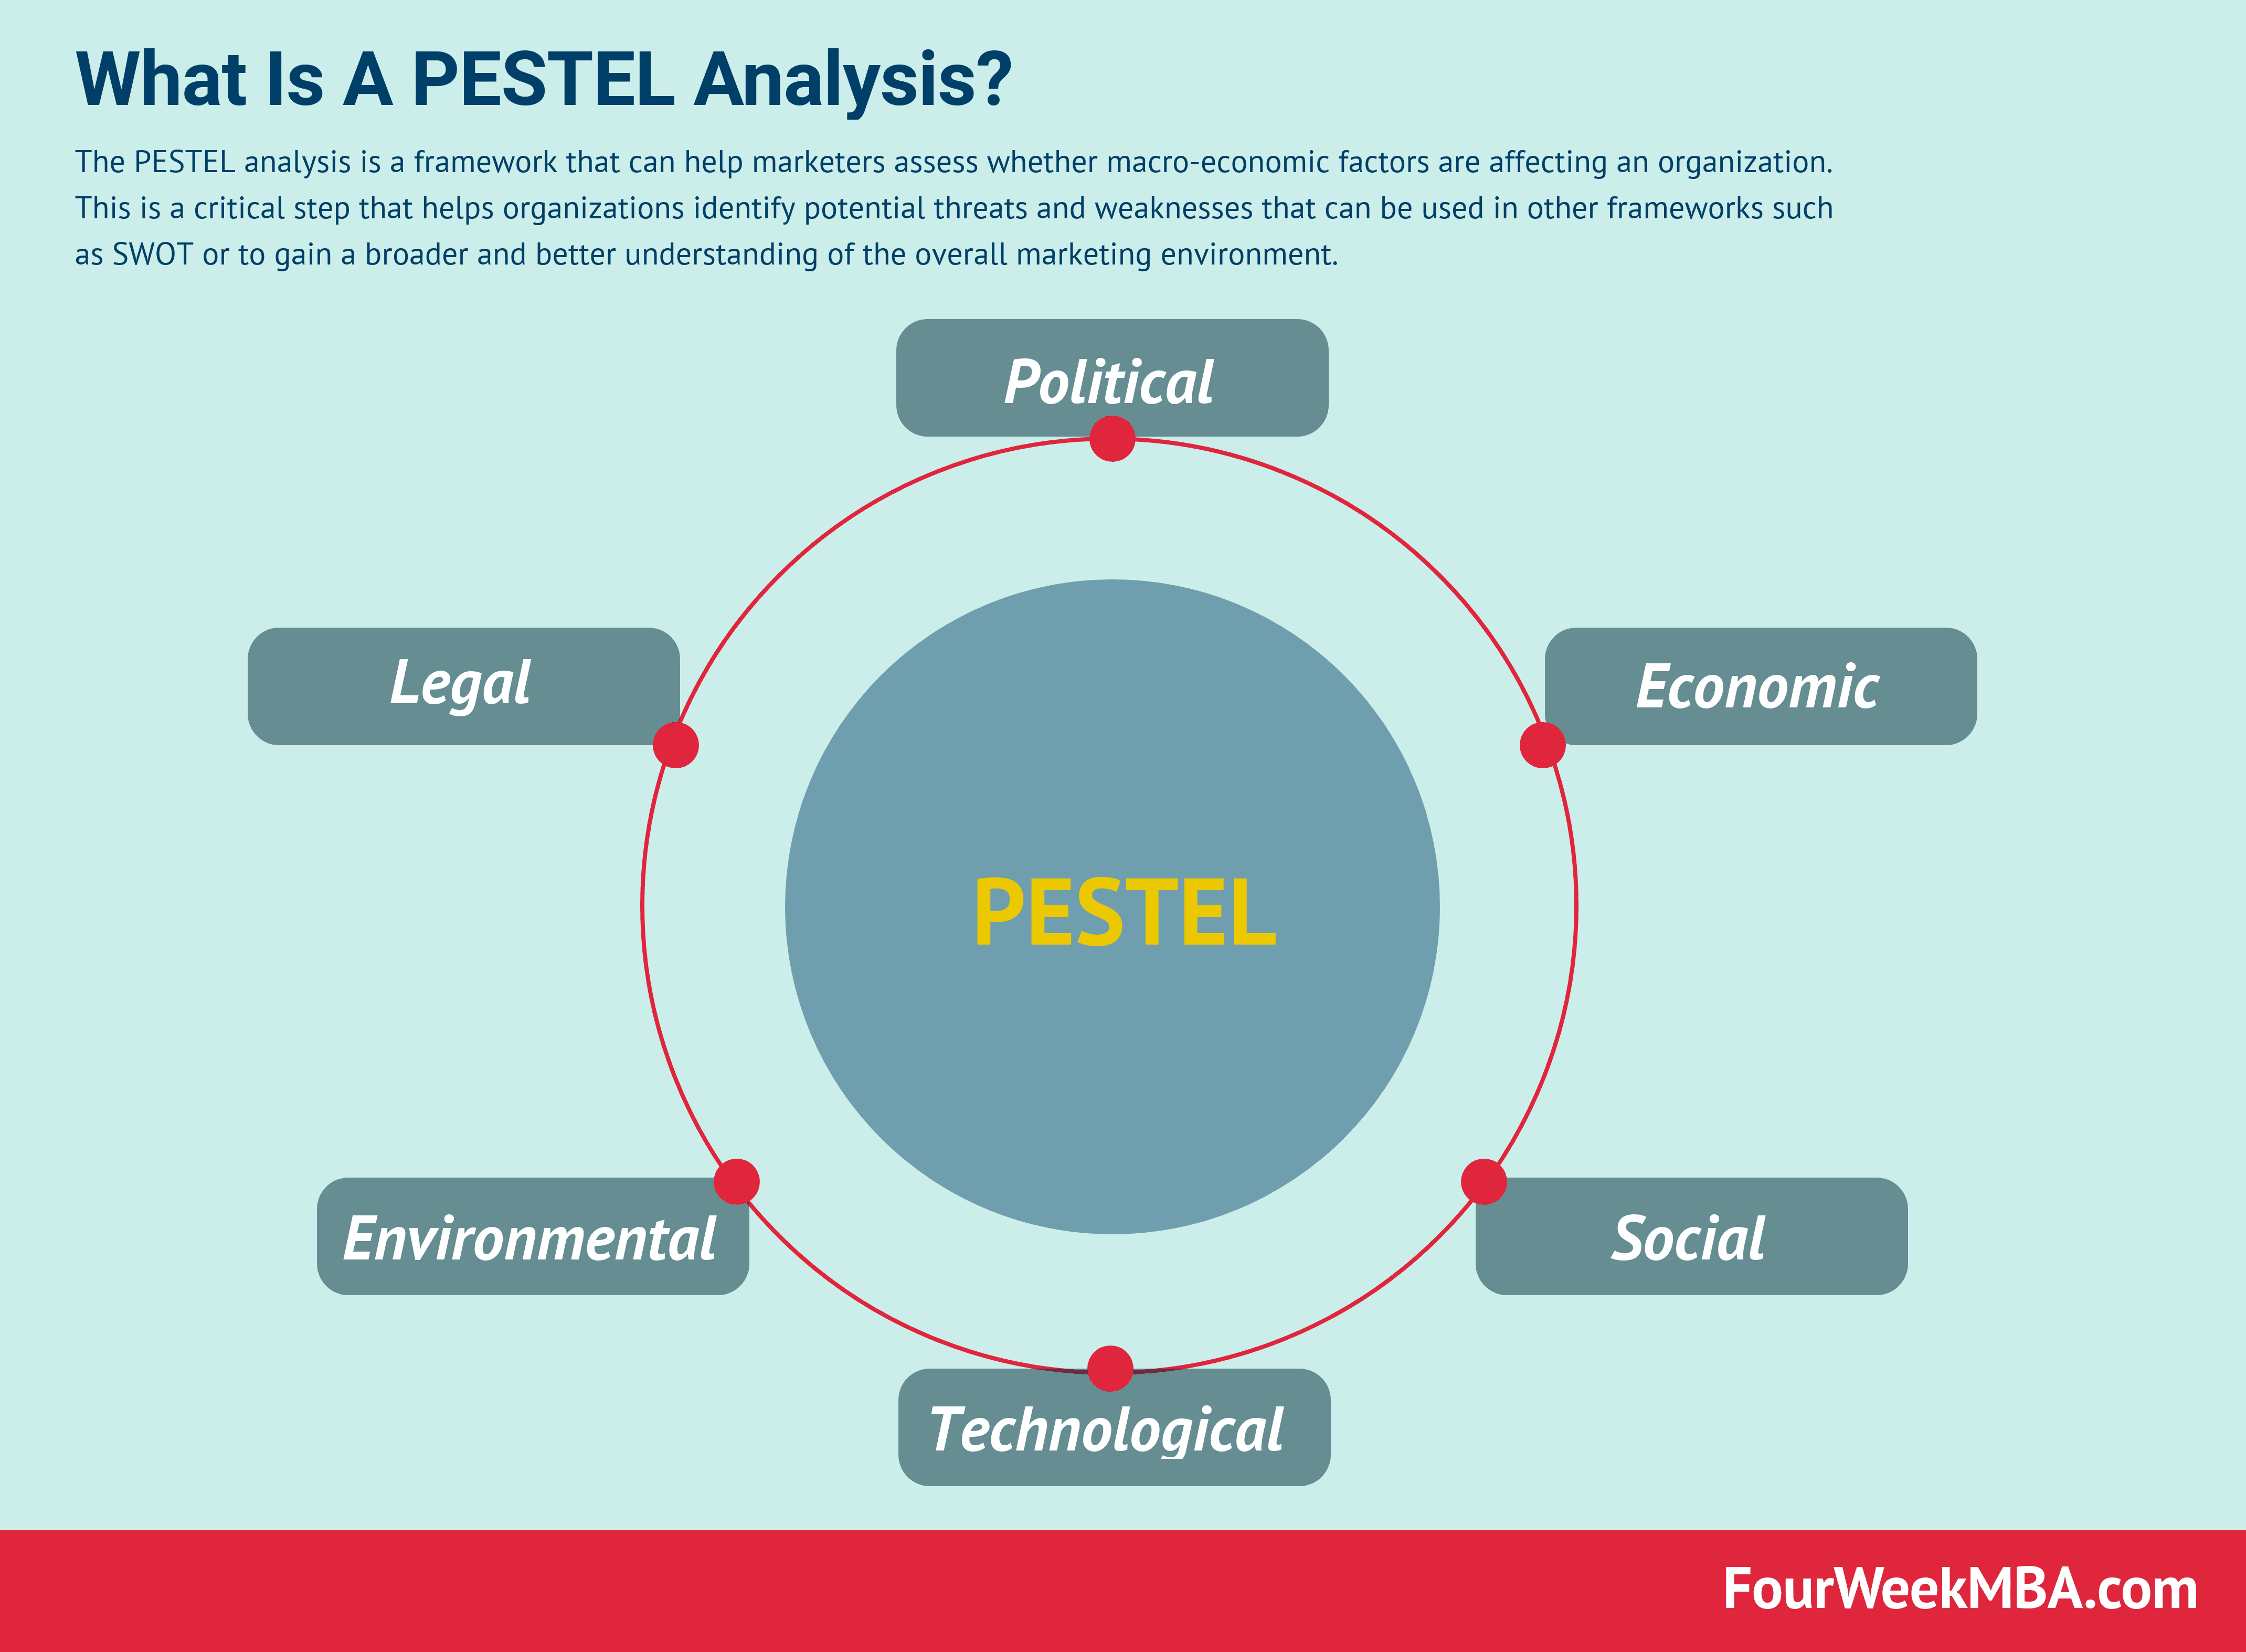 presidente Nos vemos ir de compras  What Is A PESTEL Analysis And Why It Matters - FourWeekMBA